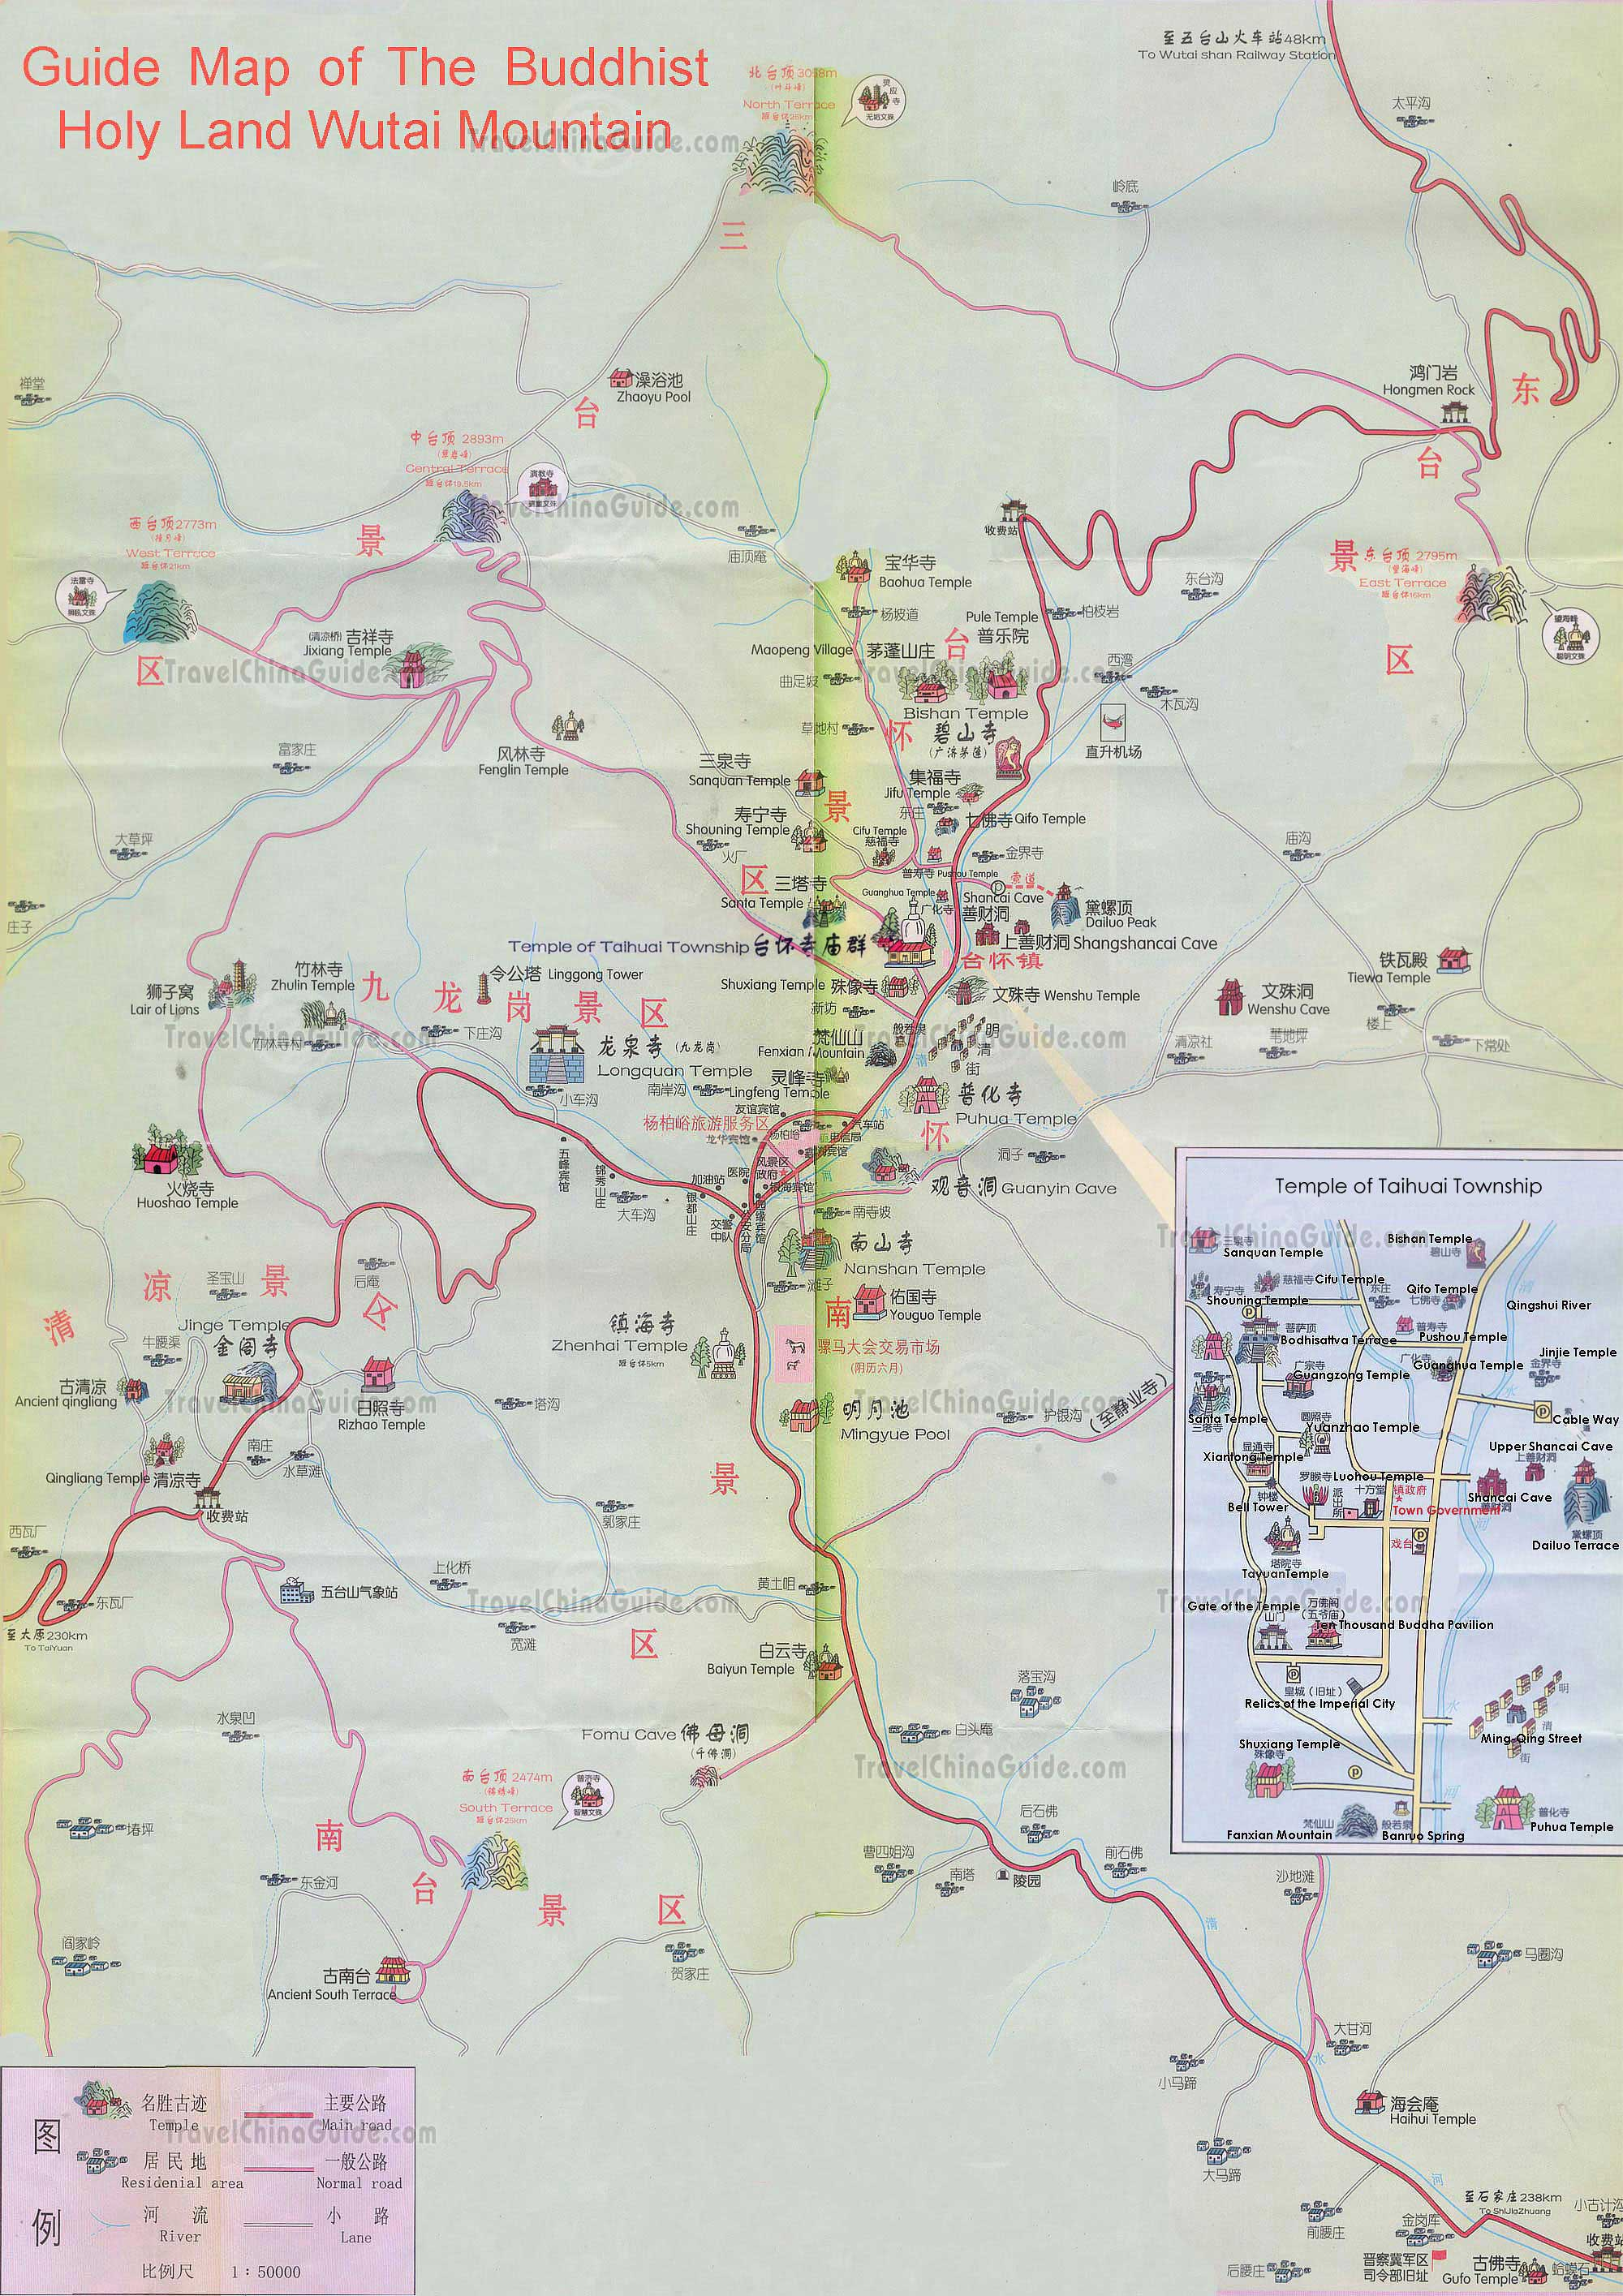 The Map of Mount Wutai